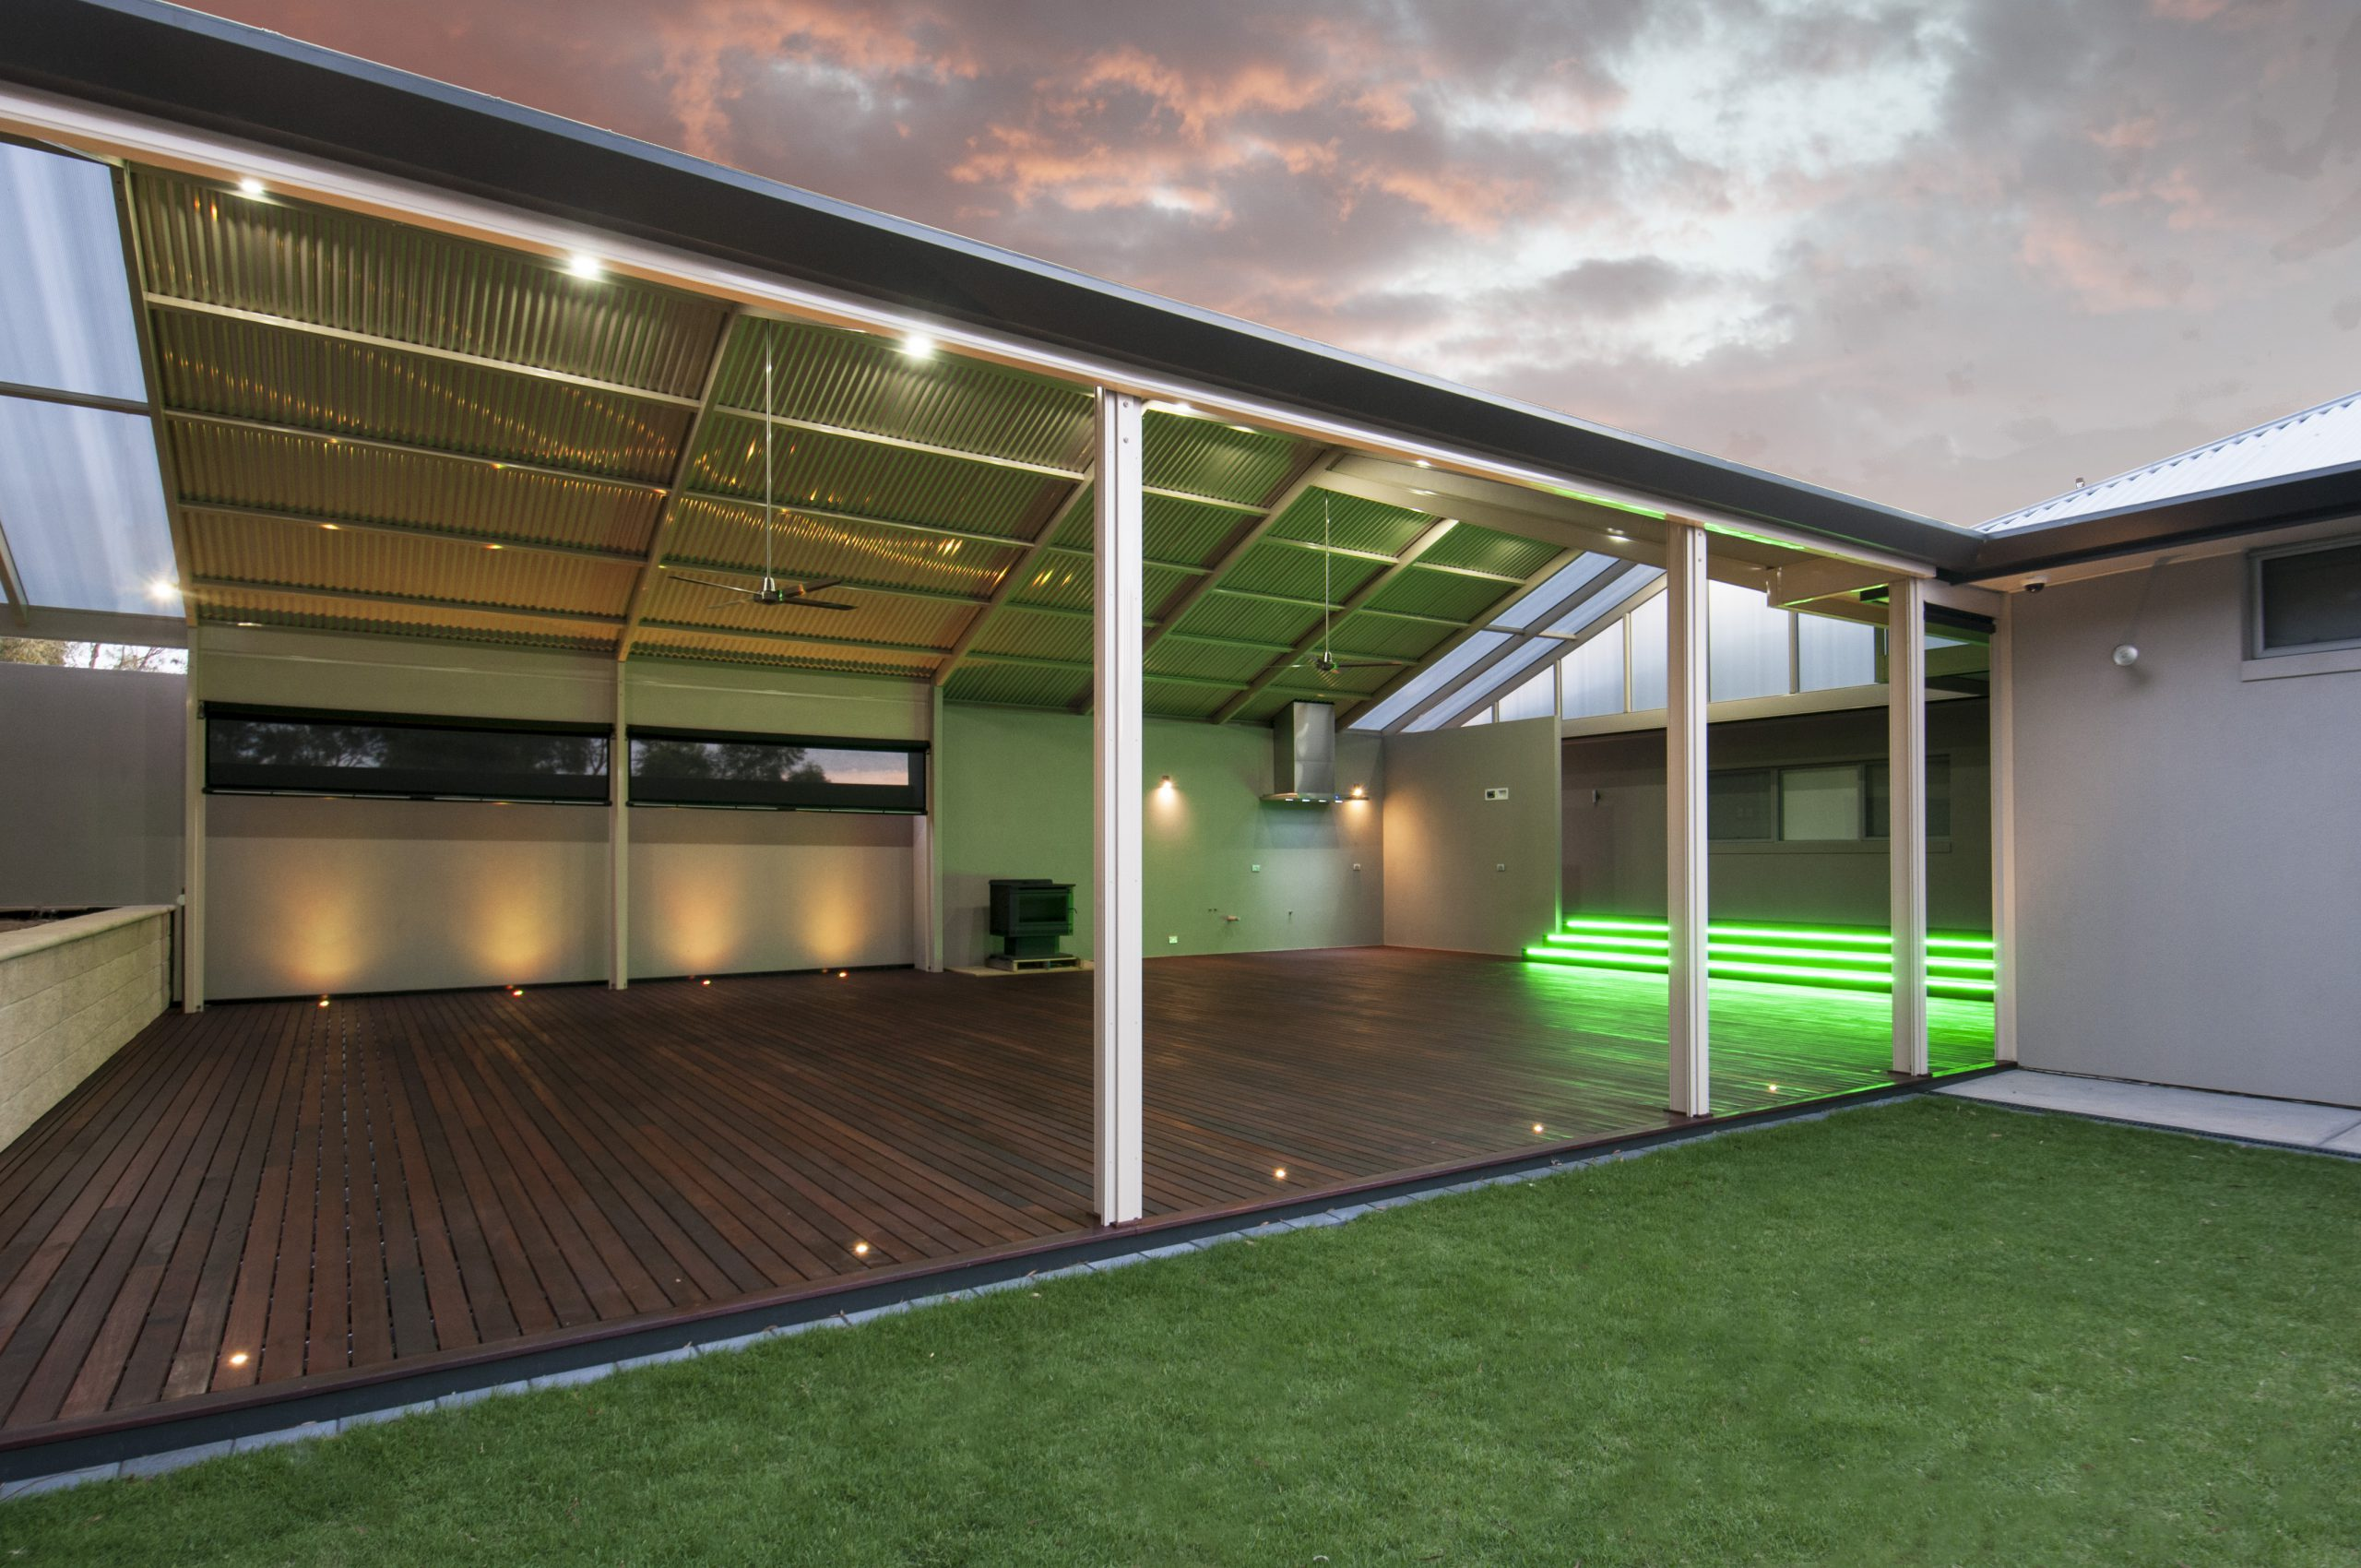 15-Decking-uplights-Downlights-colour-changing-strip-lights-wall-lights-scaled